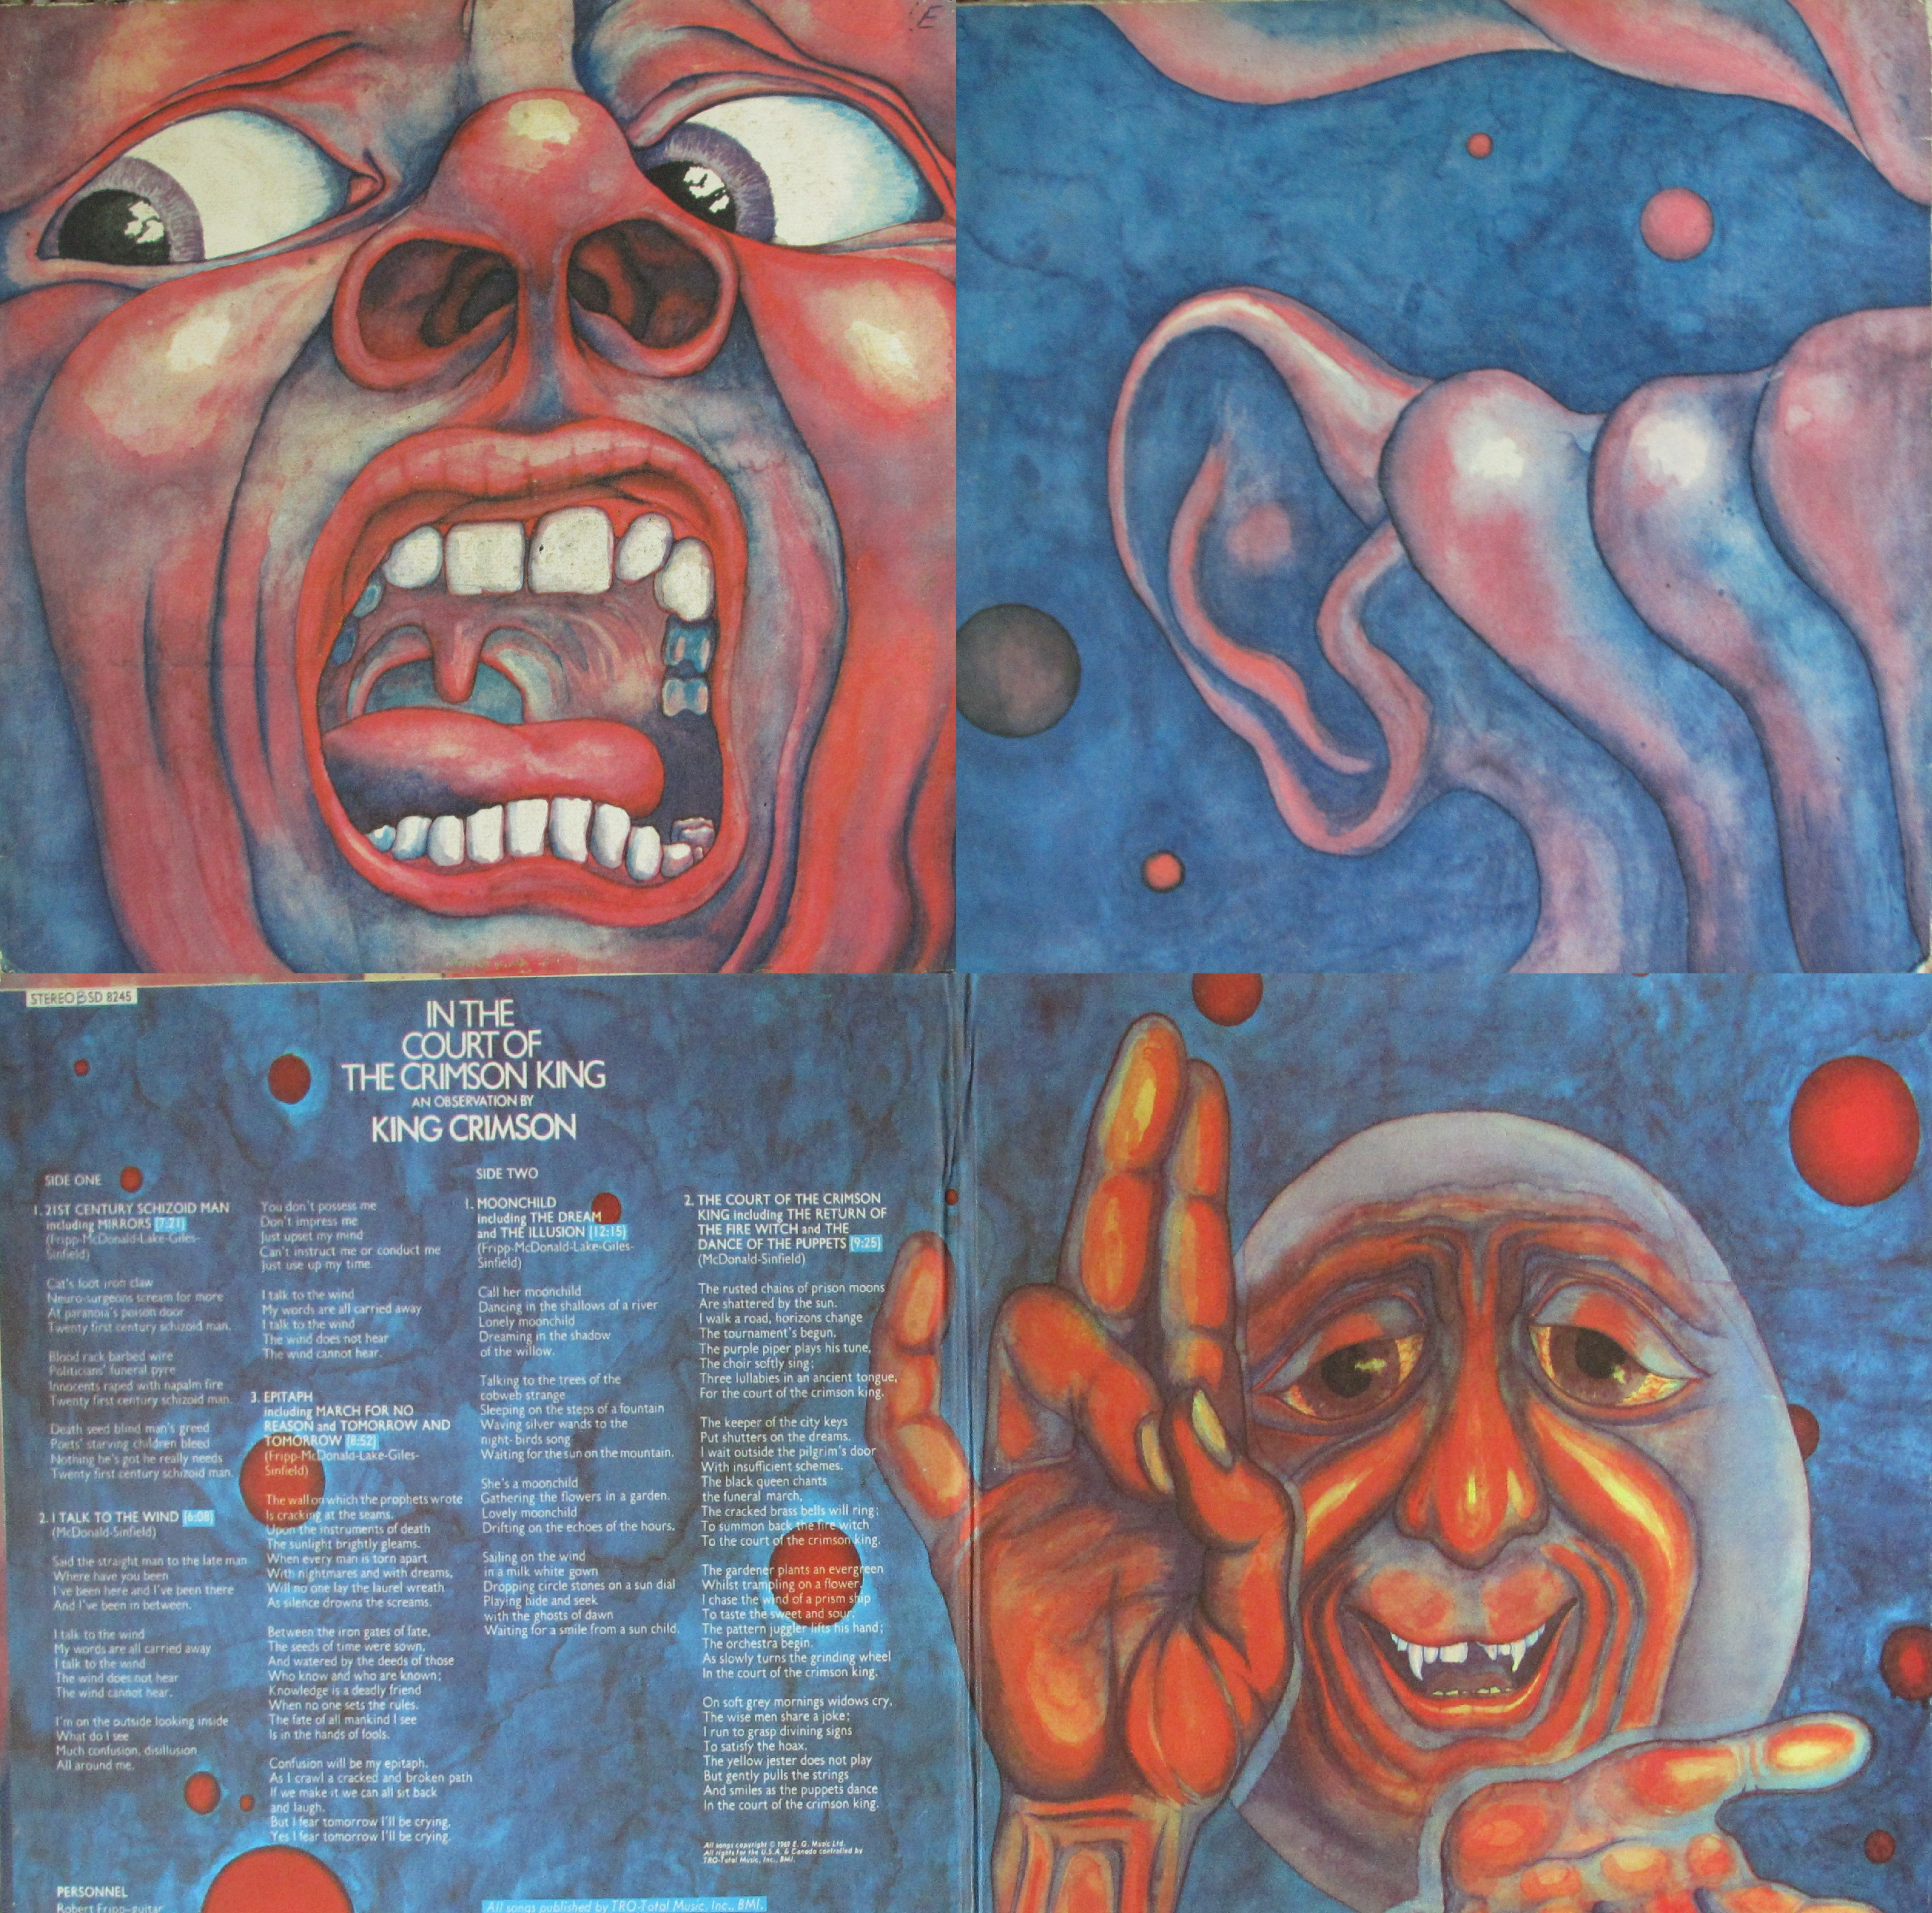 King Crimson - March 27 1974 Augsburg Germany